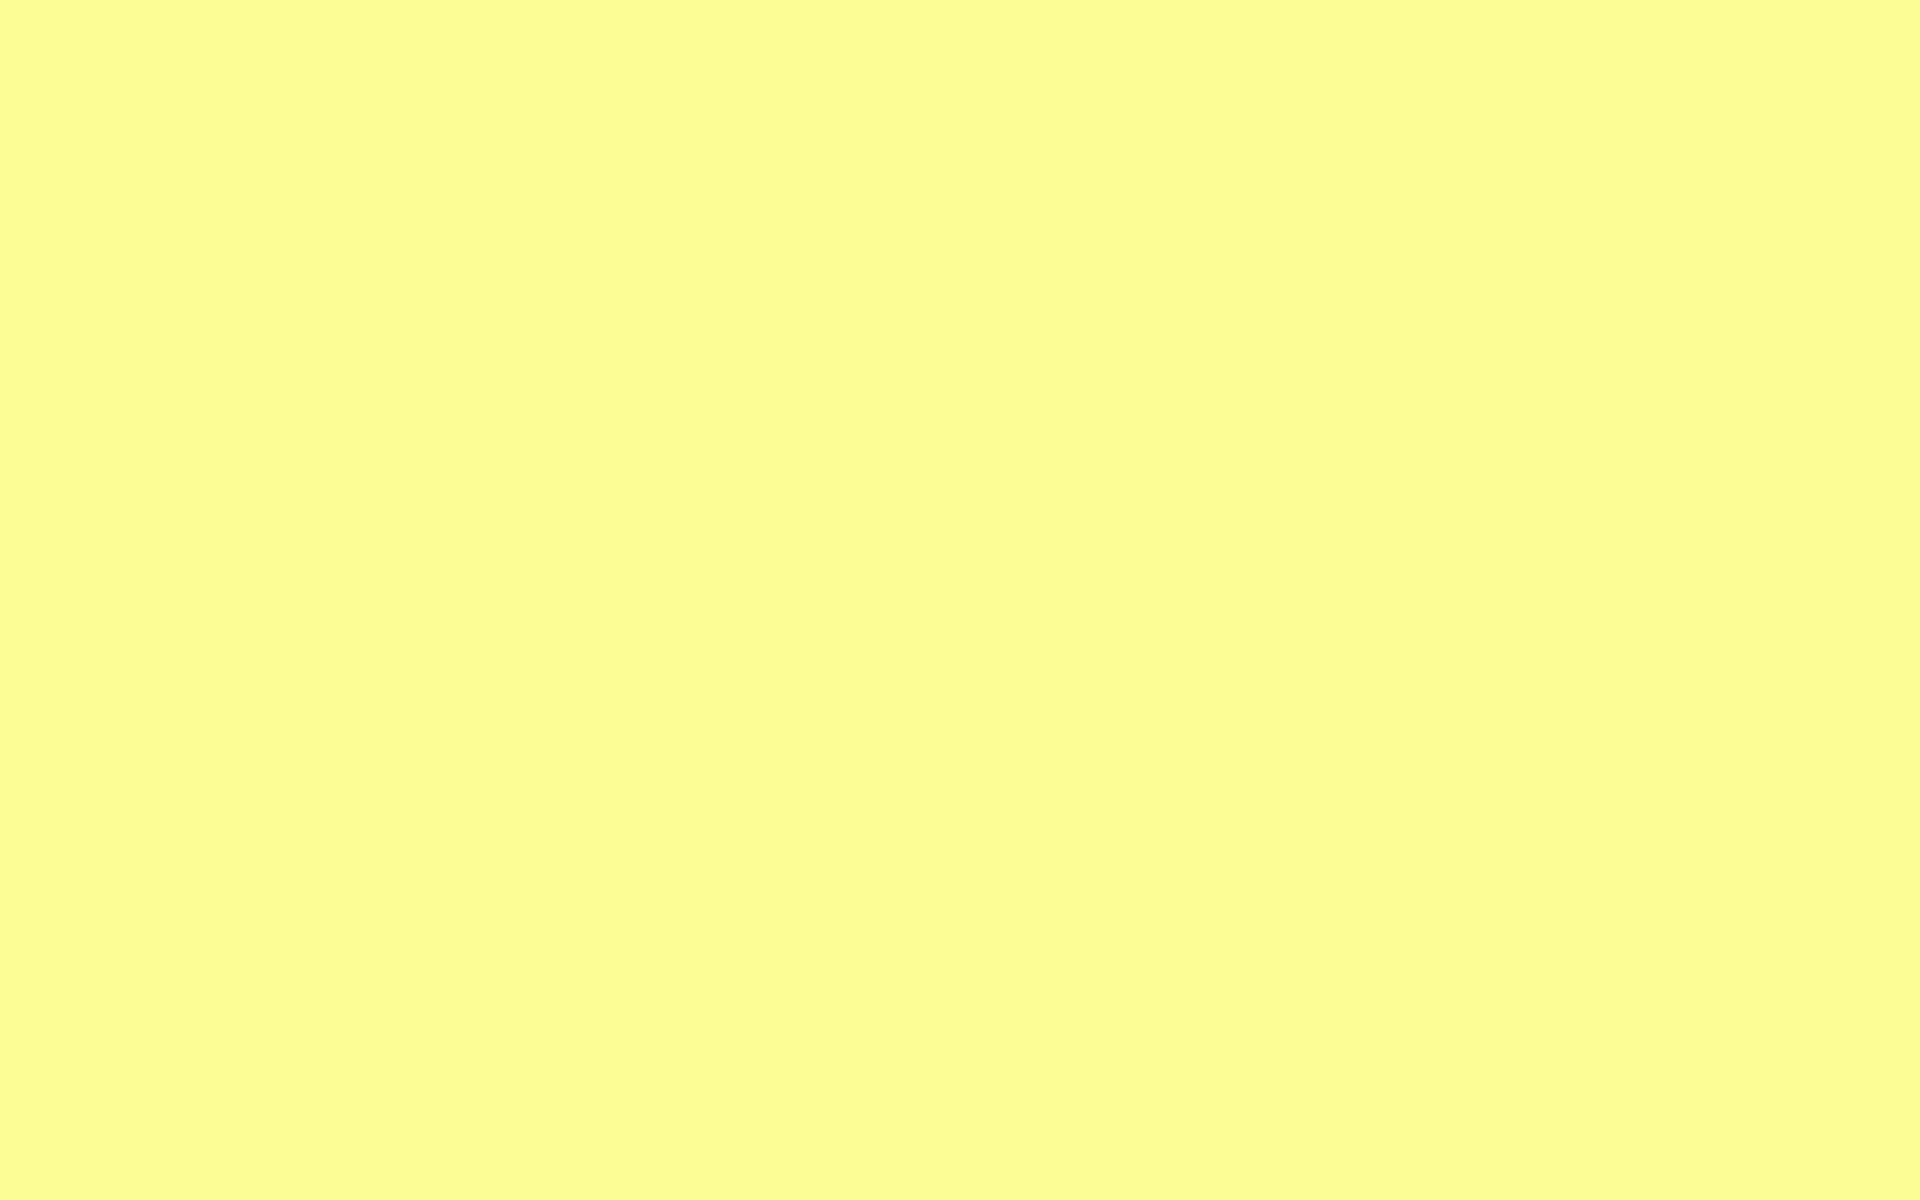 Solid Pastel Yellow Background 1920x1200 pastel yellow solid 1920x1200